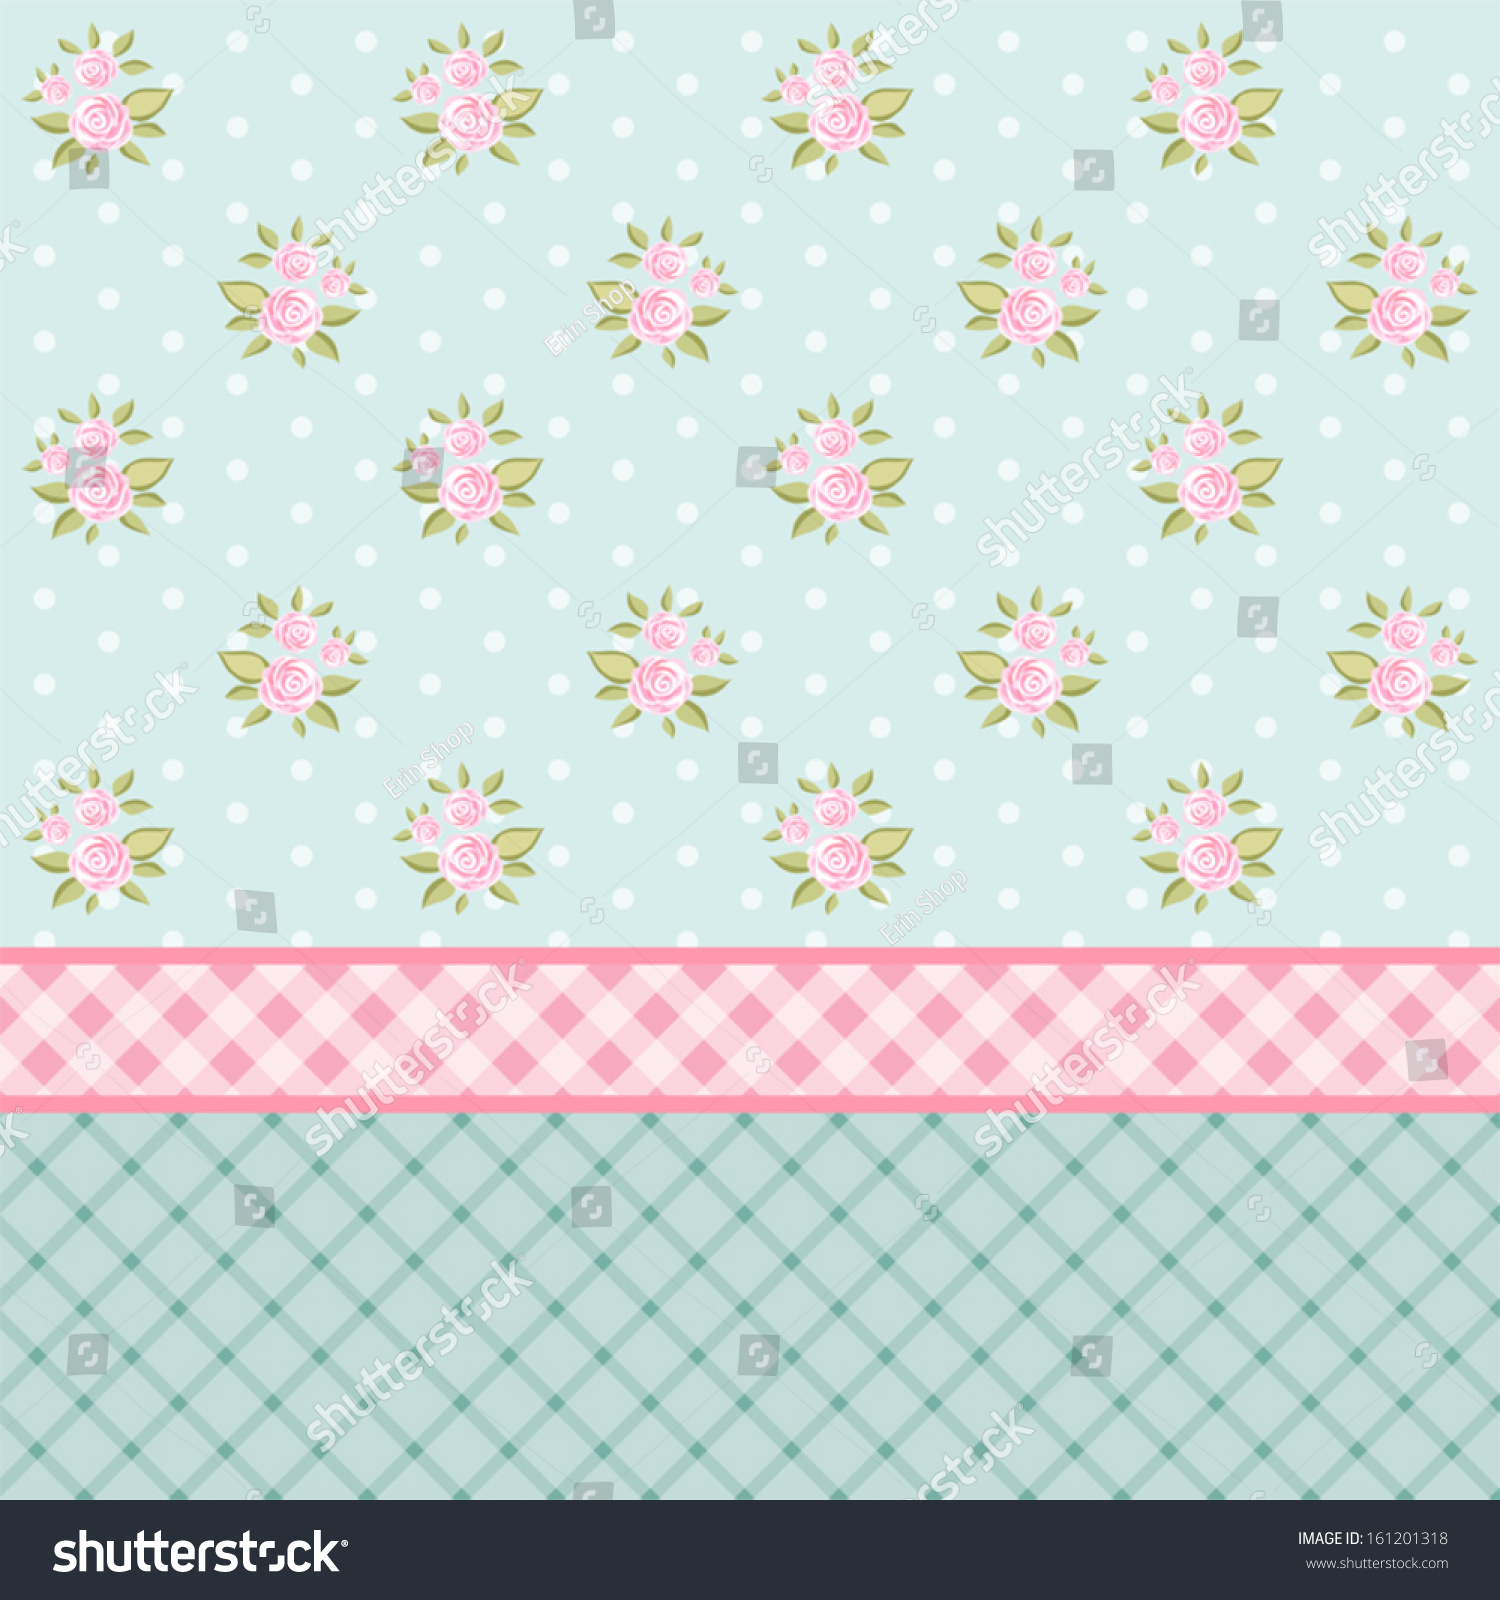 Vintage floral background pink roses shabby stock vector for Lampe style shabby chic